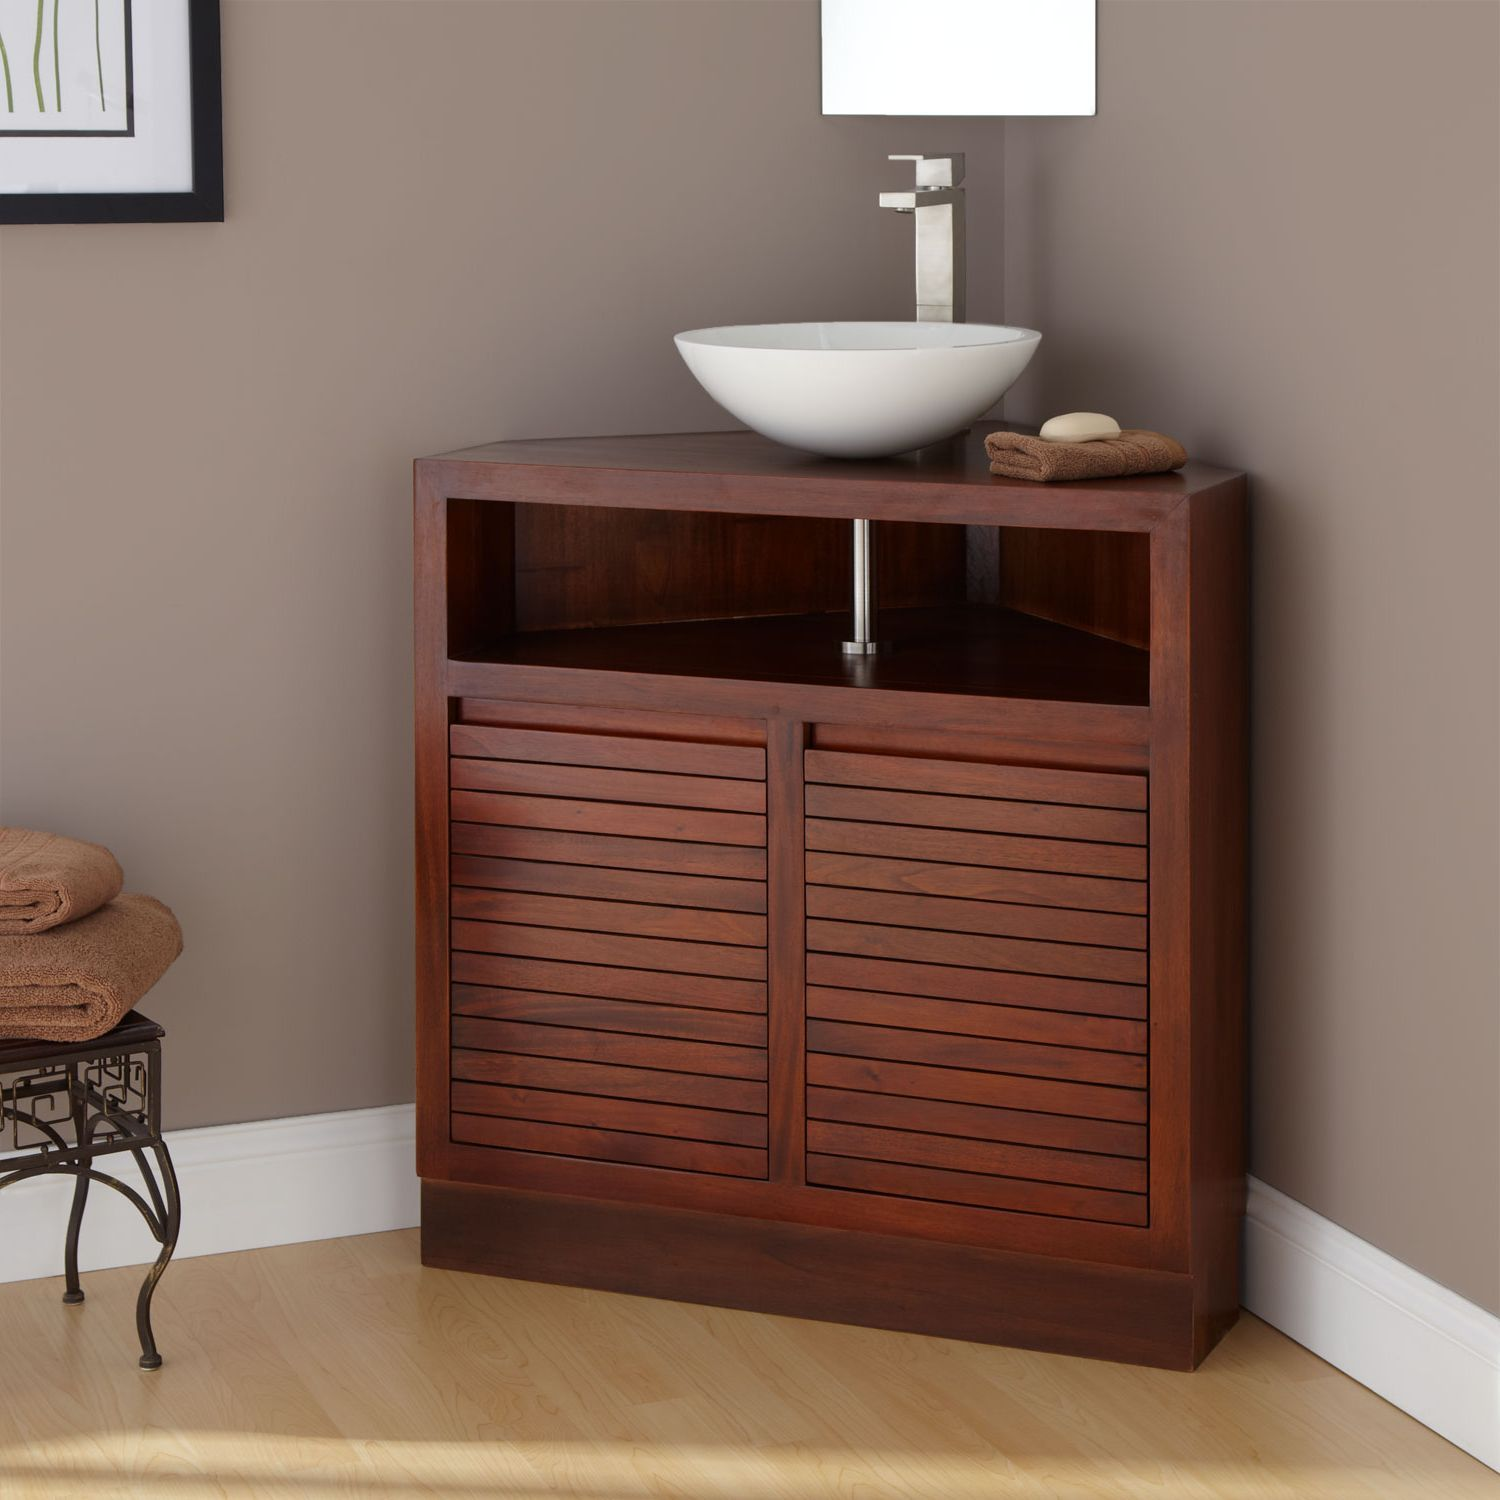 Brown Homely Modern Corner Bathroom Vanity Classic Looking